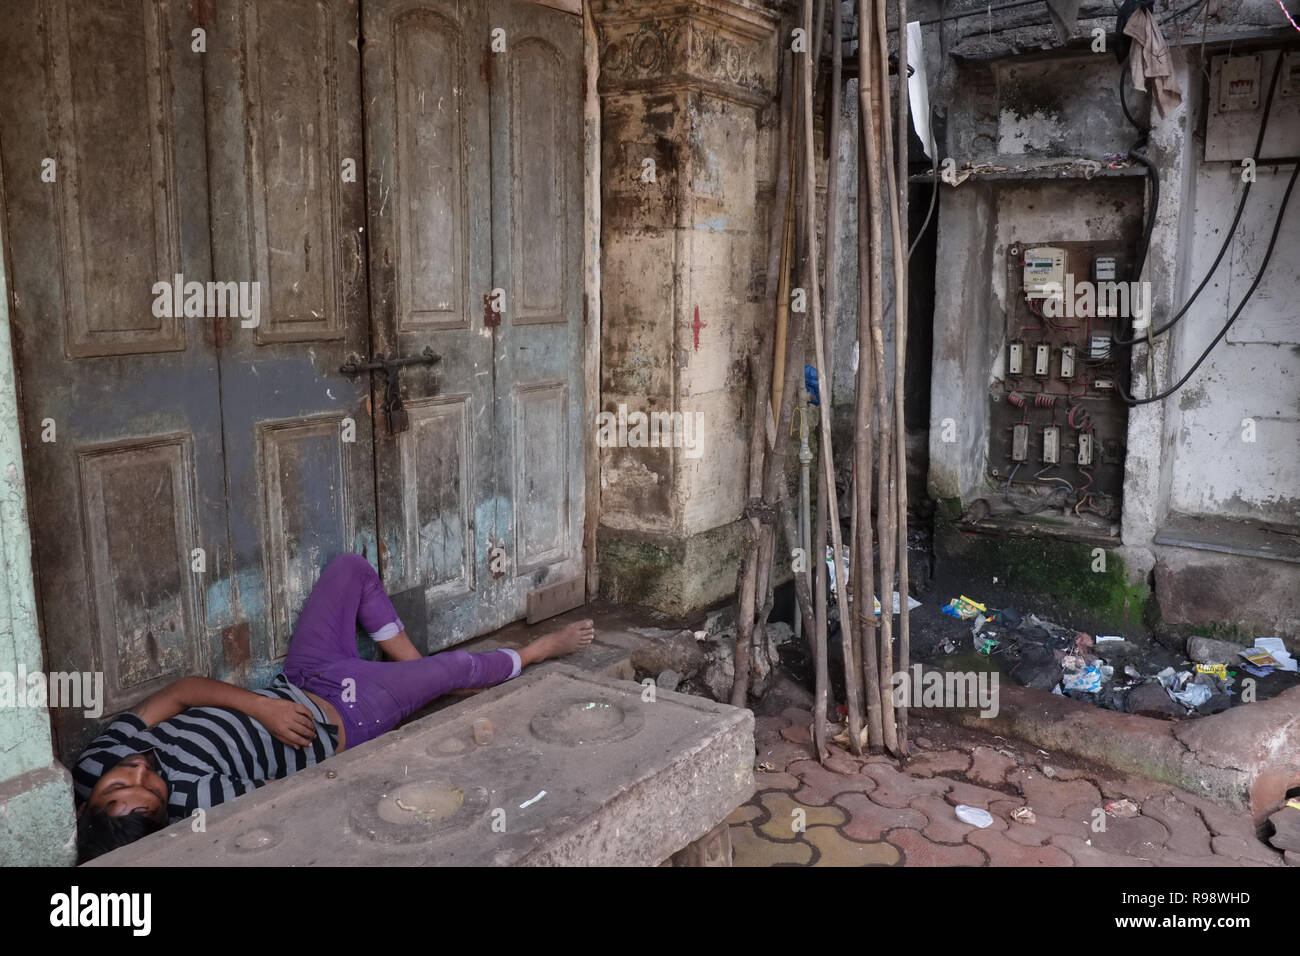 A man sleeps in a doorway in Mumbai, India, next to to a dubious looking electric unit counter and transformer - Stock Image